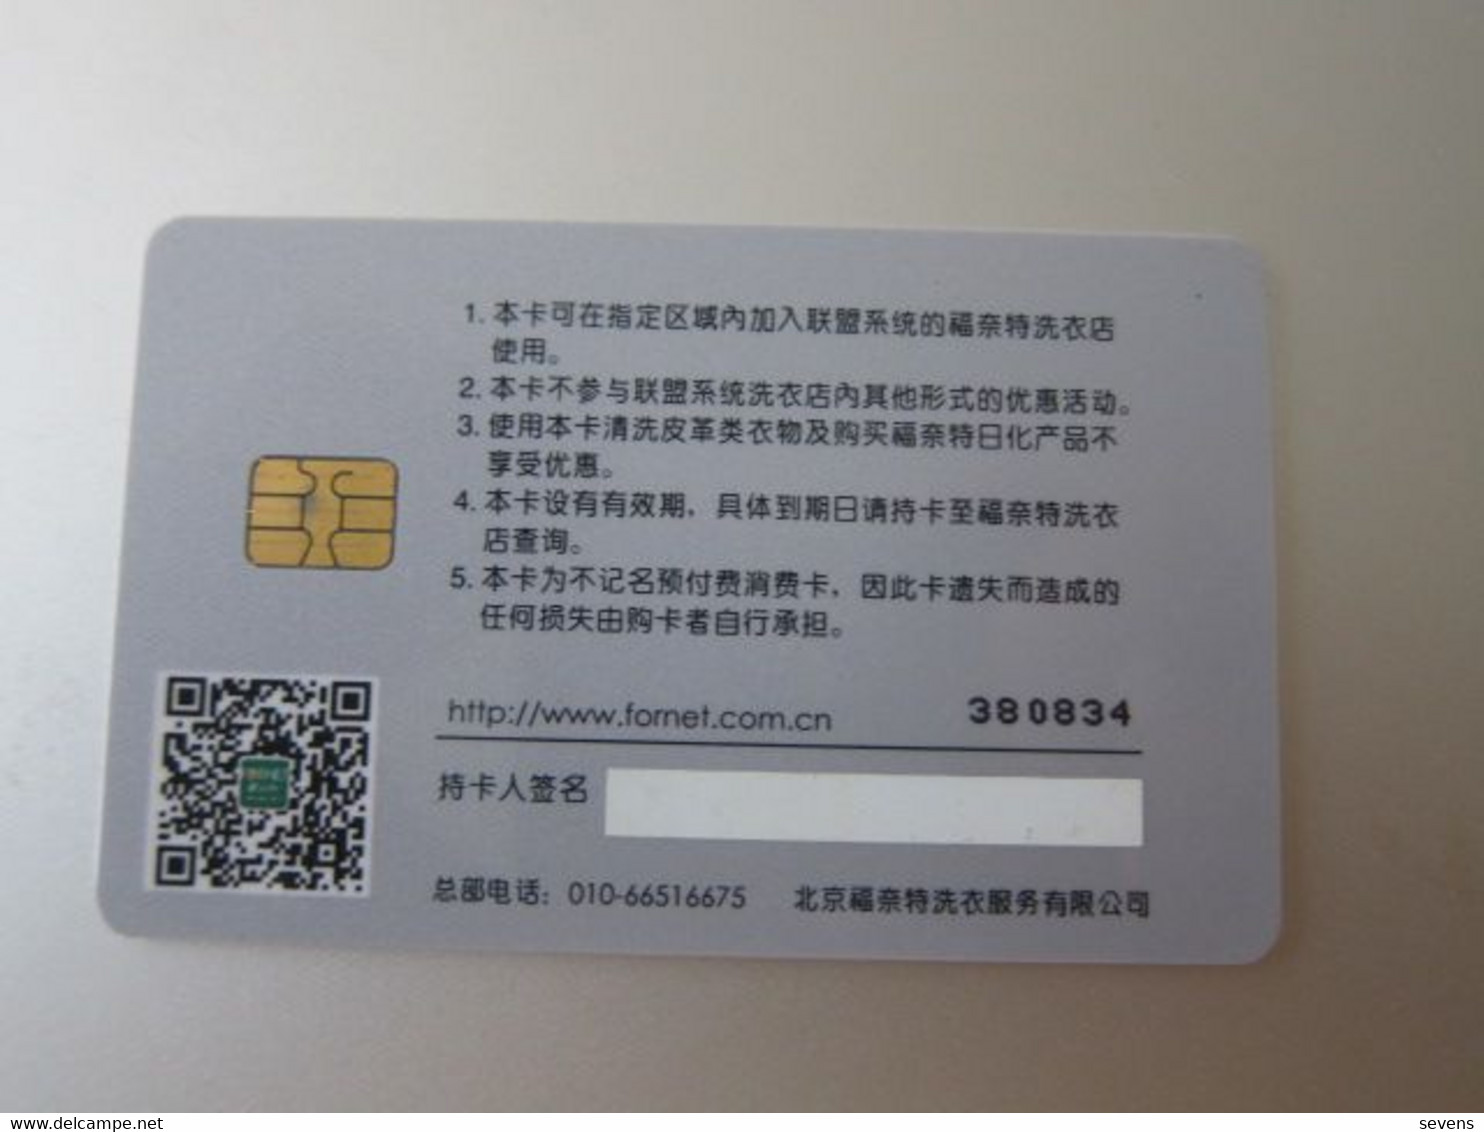 Fornet Laundry Chip Card - Unclassified